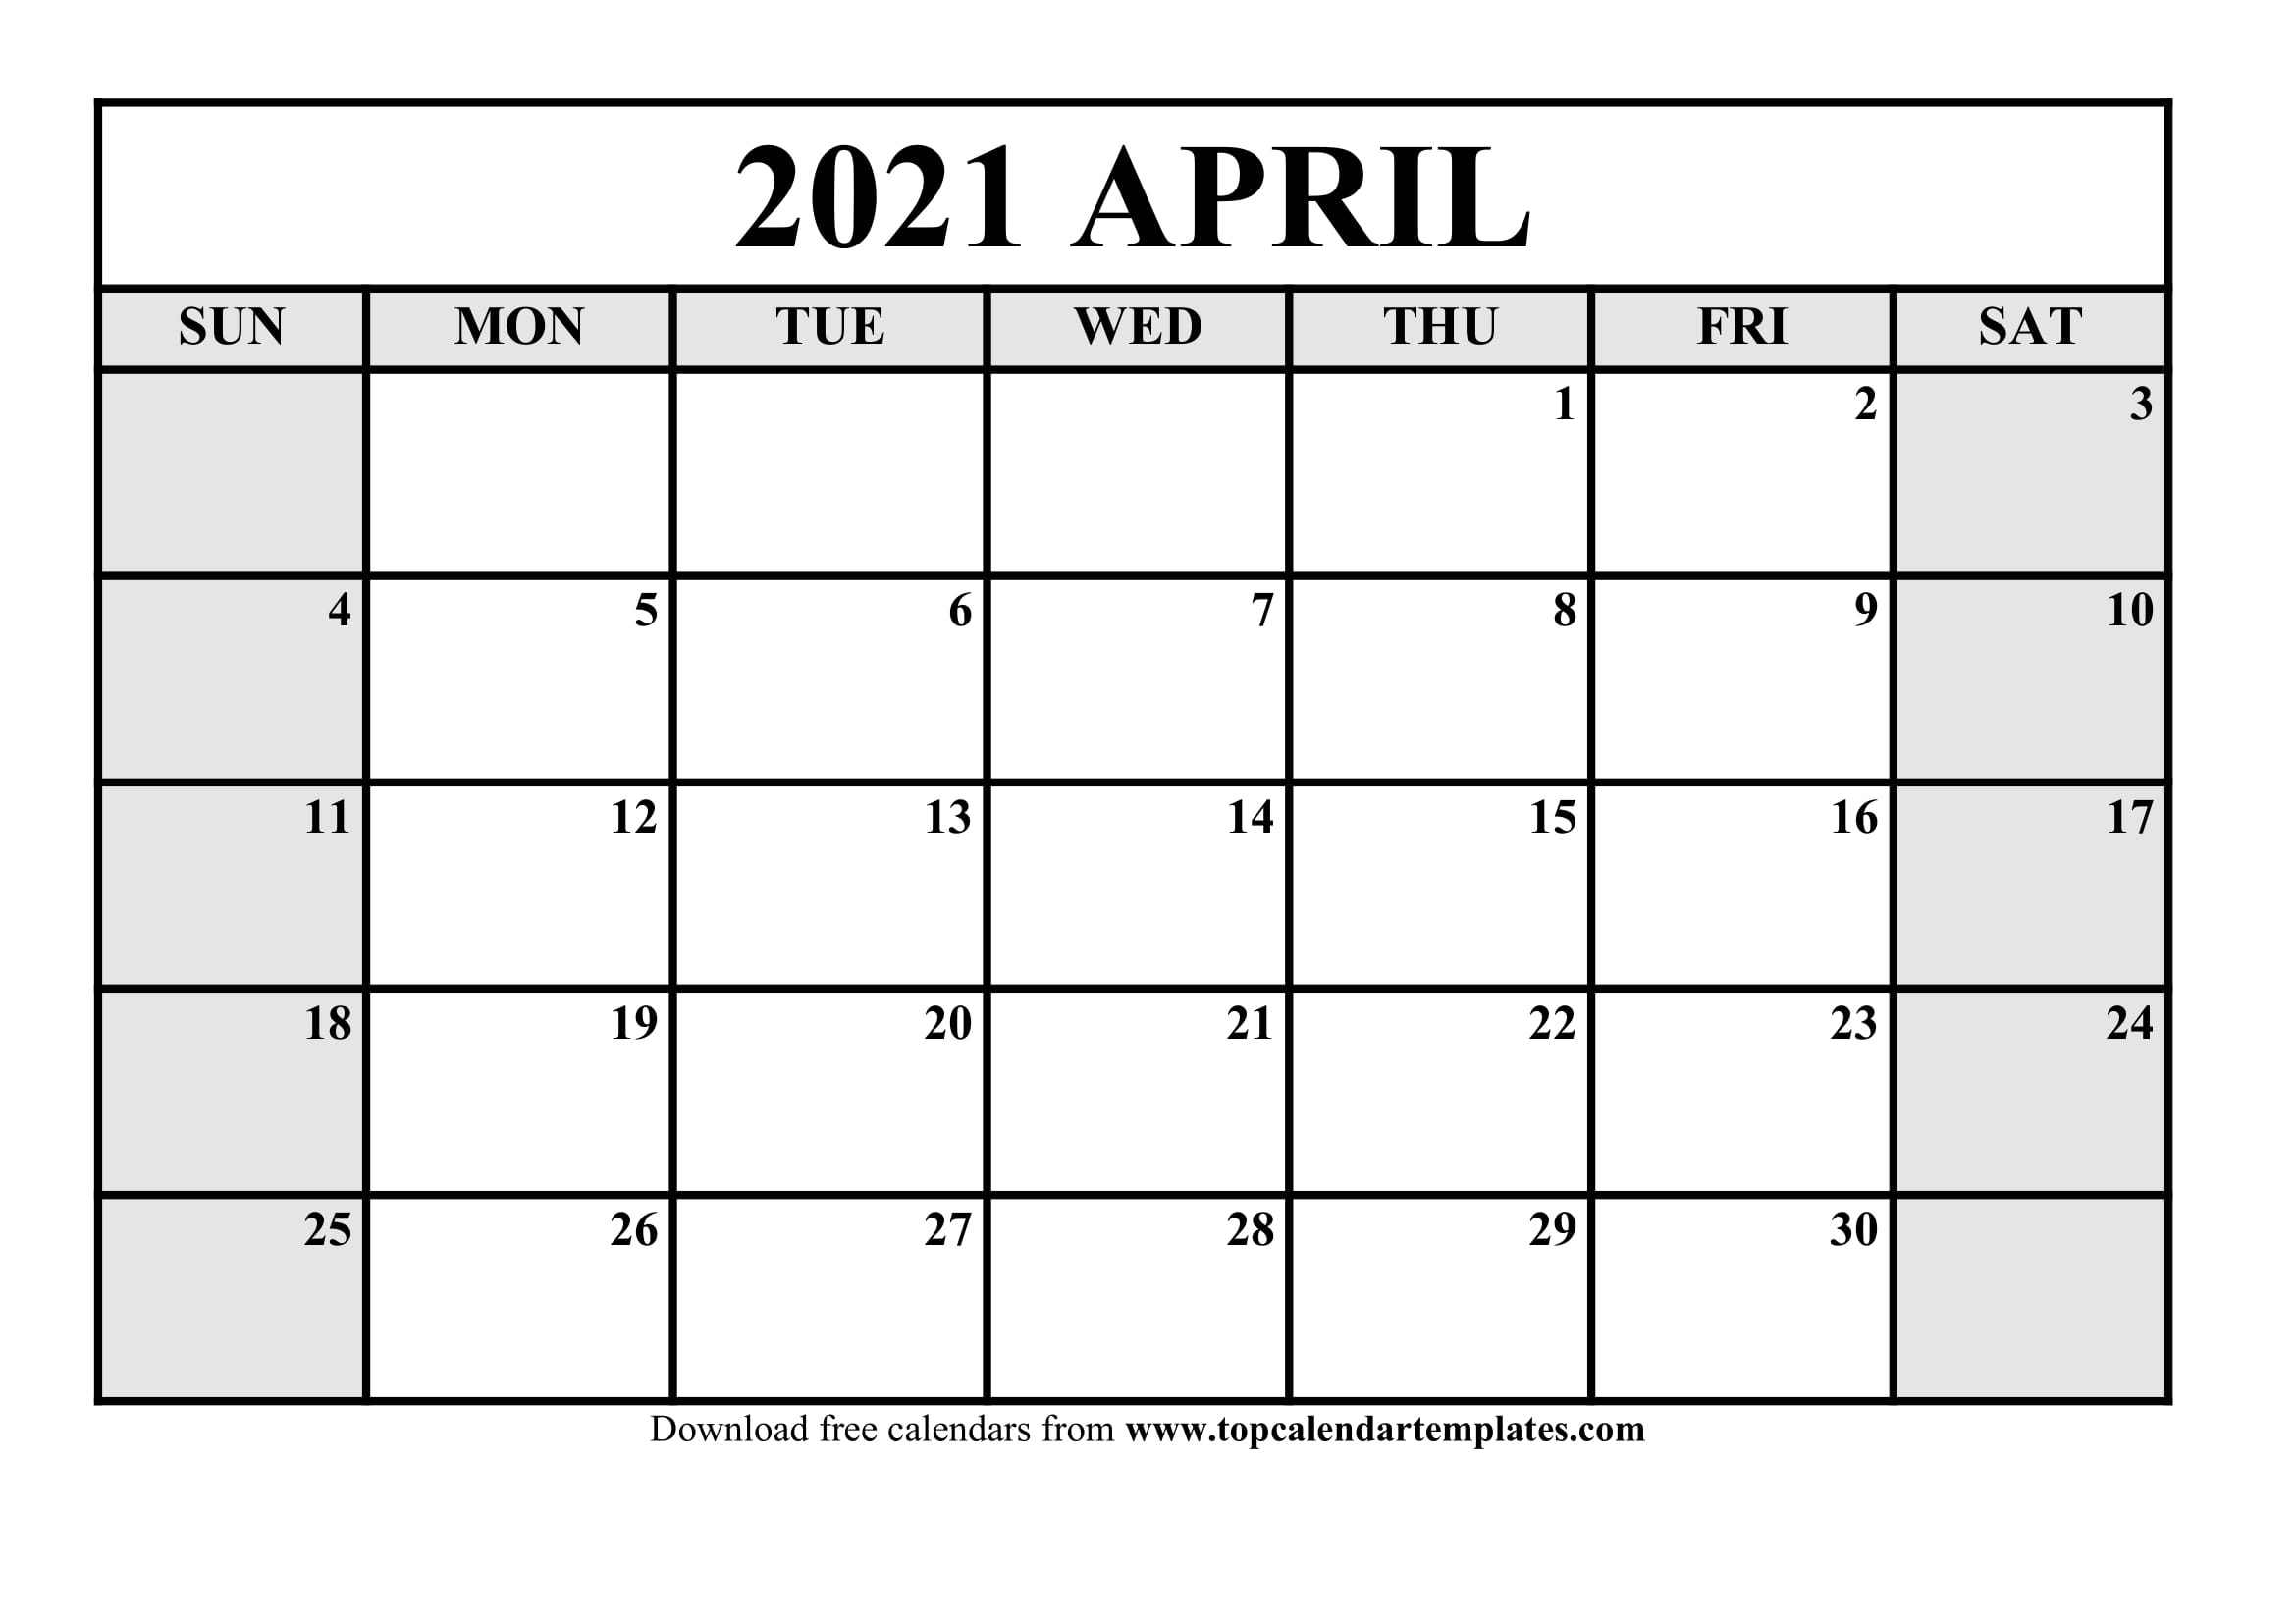 Free April 2021 Calendar Printable - Monthly Template